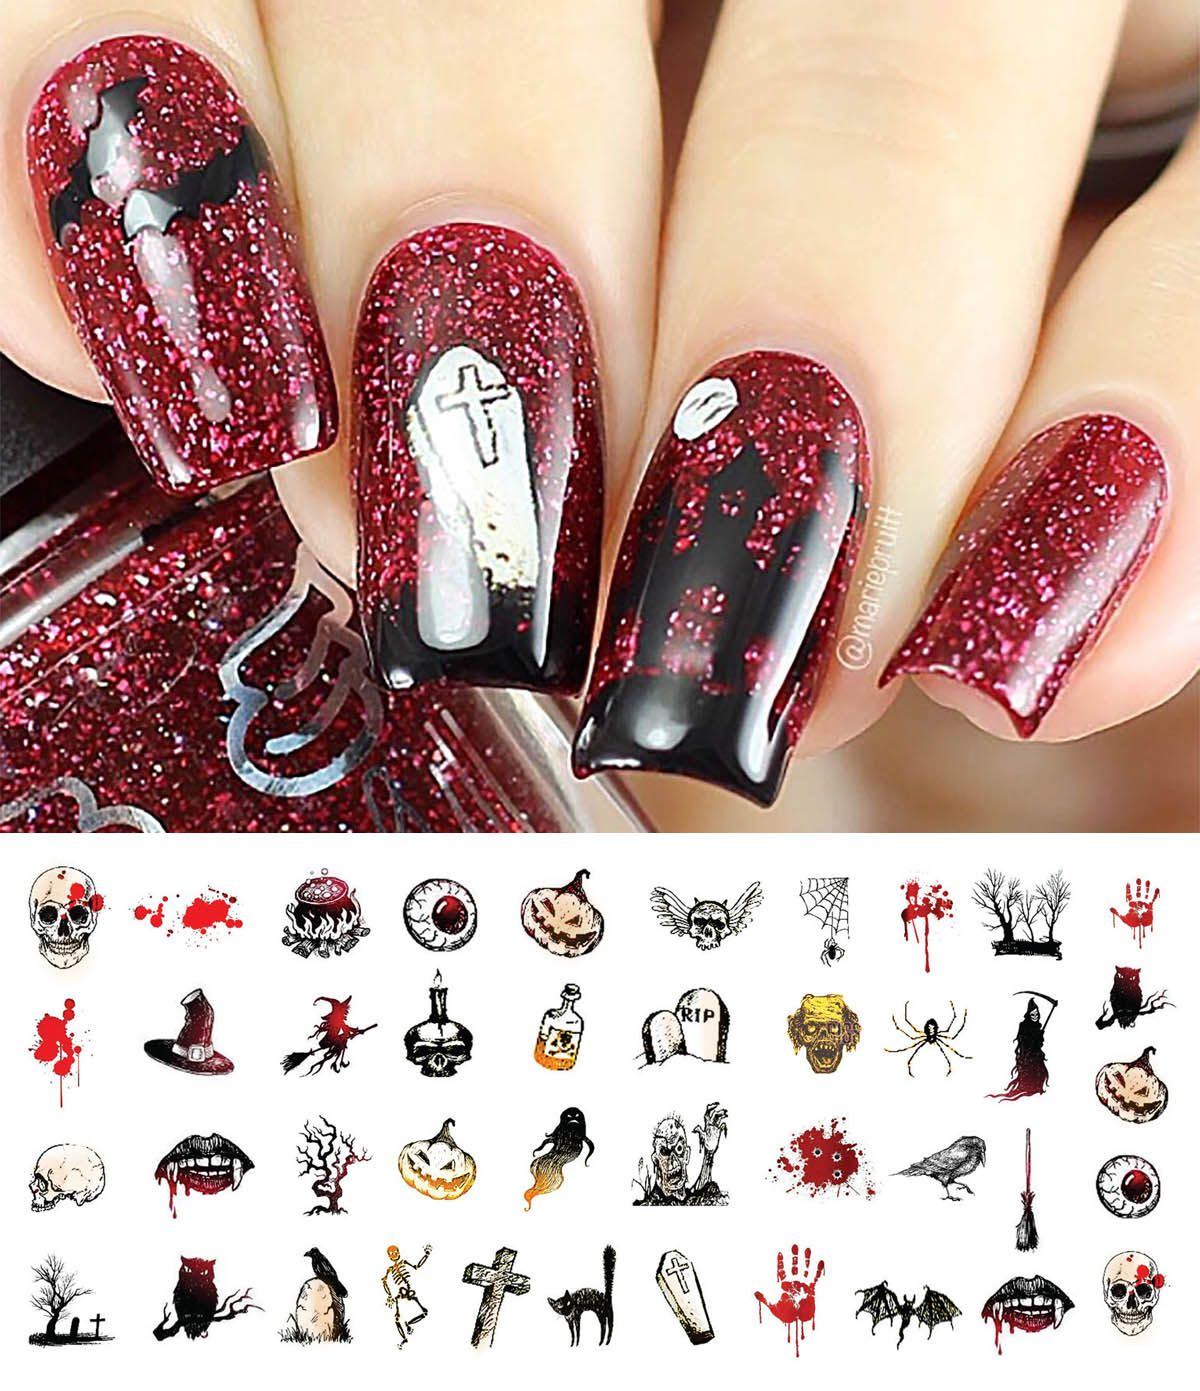 Pin By Moon Sugar Decals On Halloween Nail Art Decals Pinterest